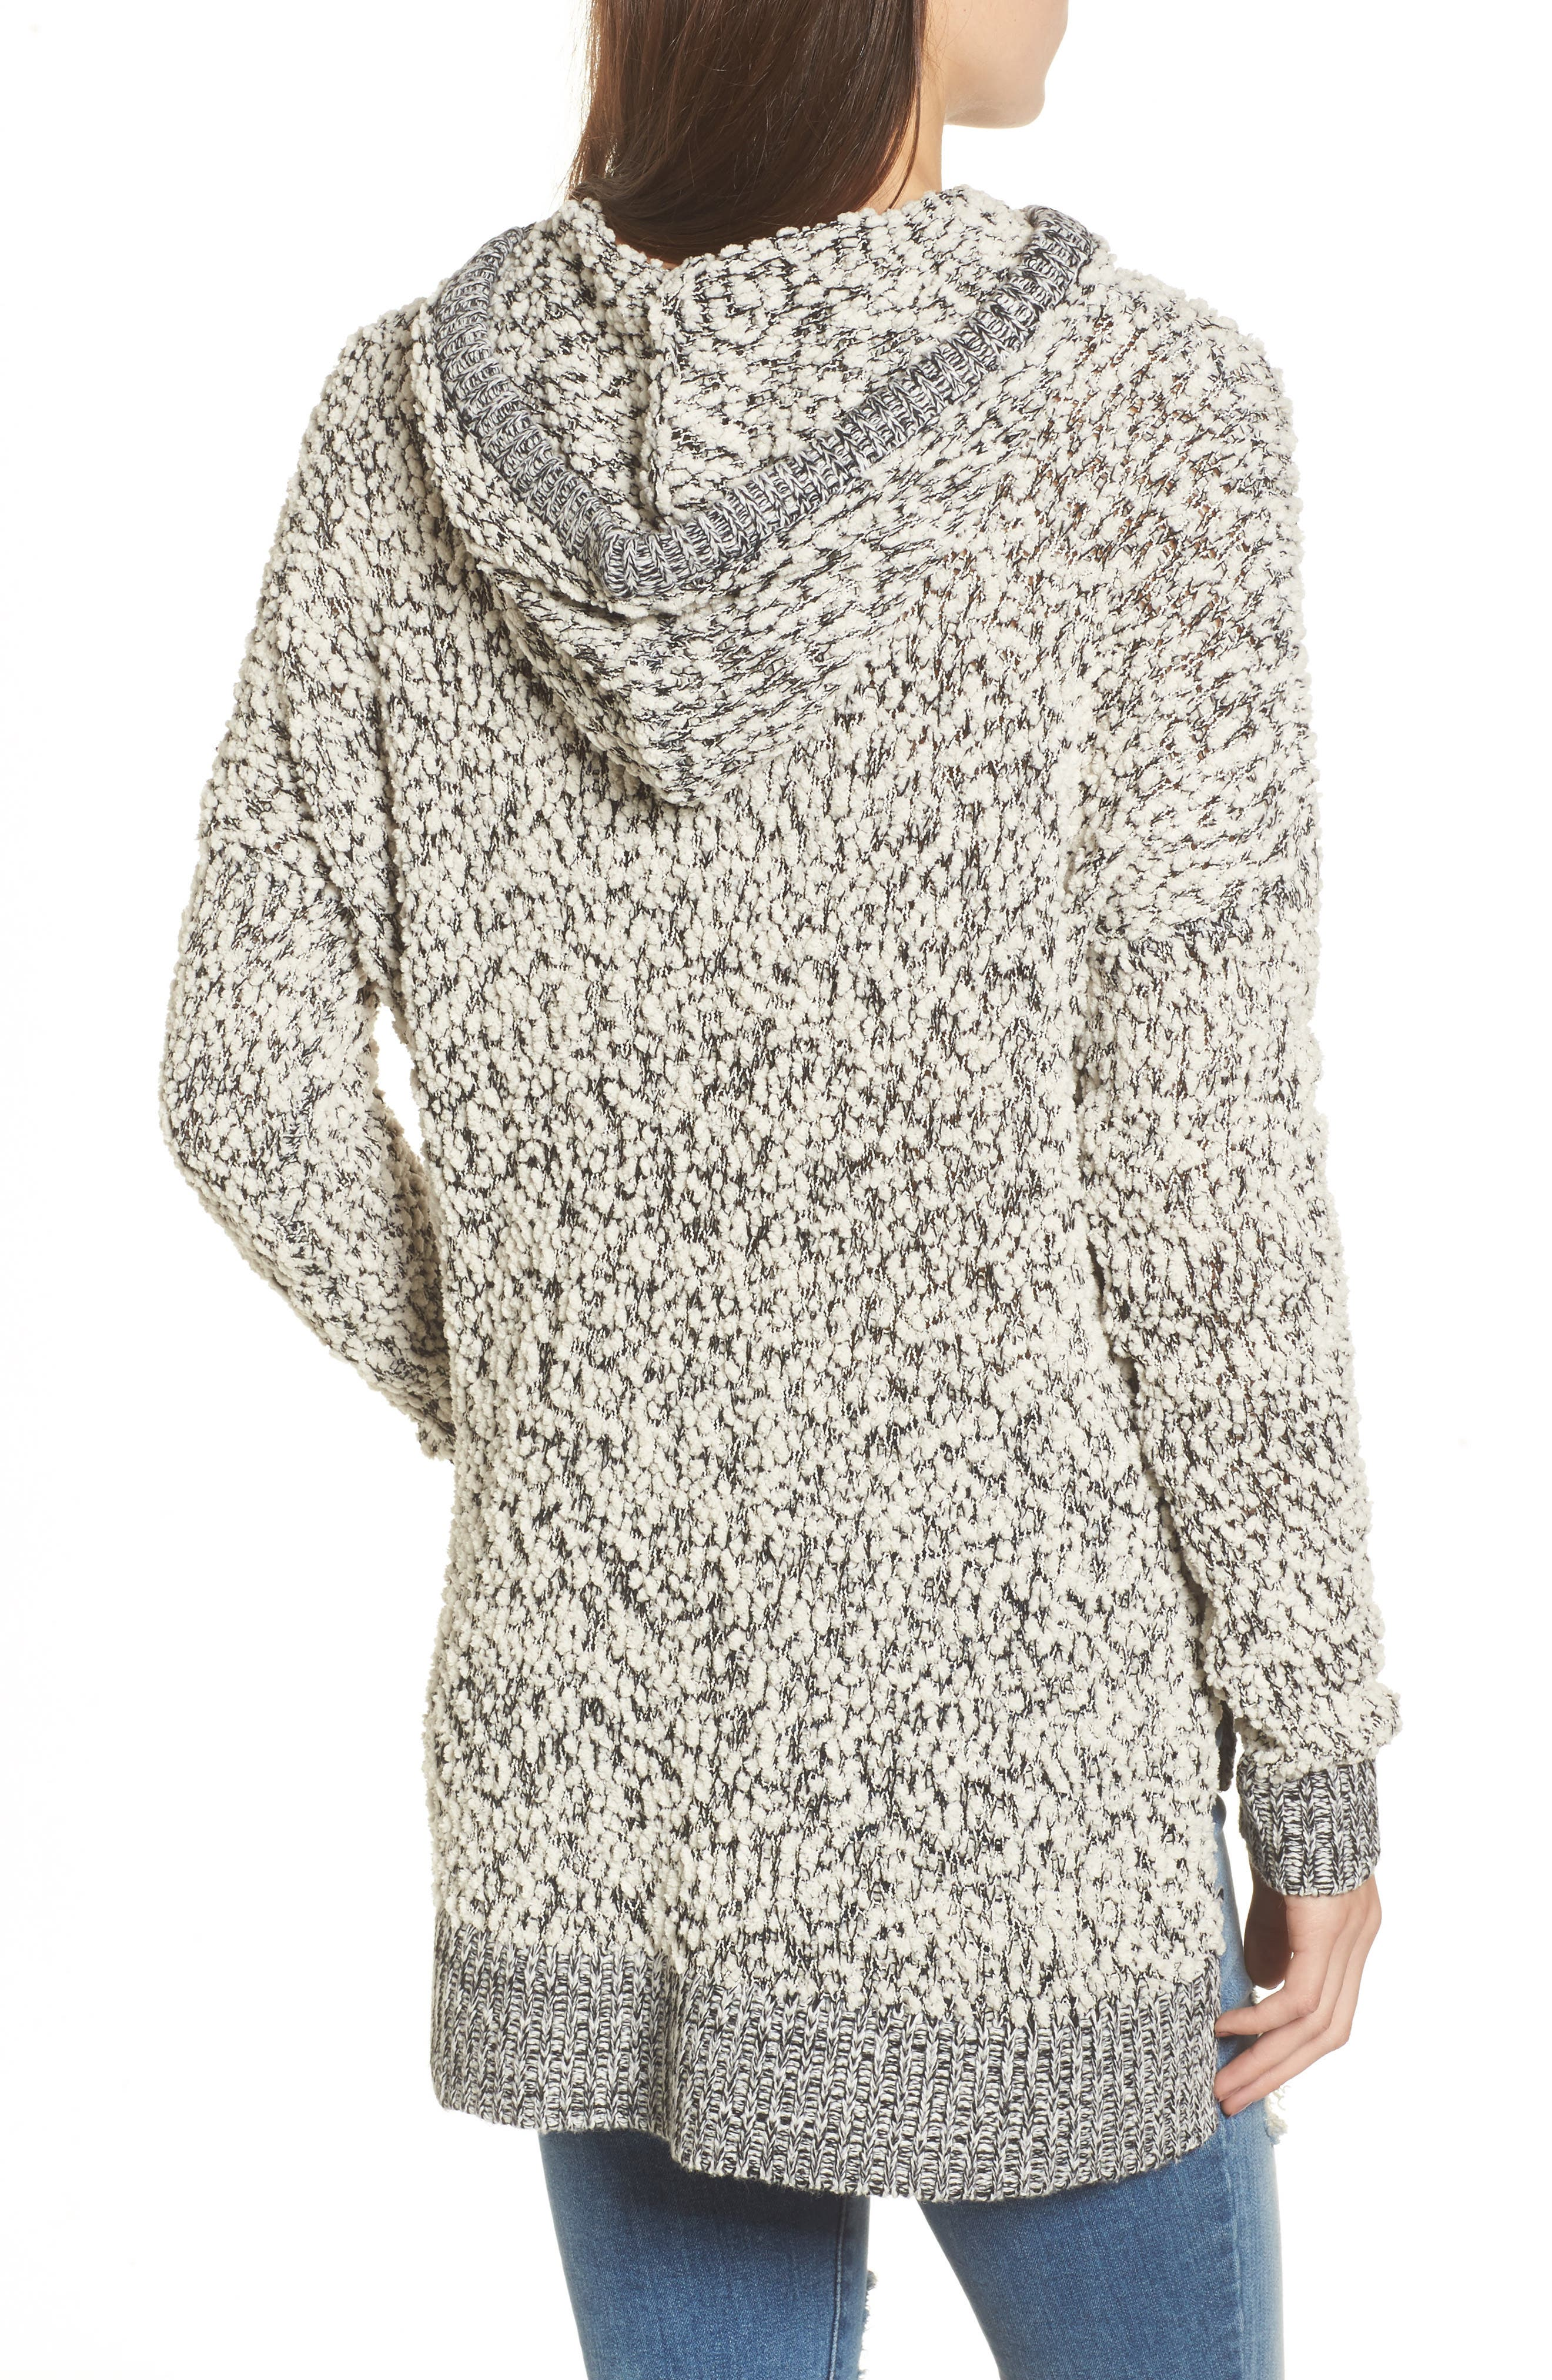 Knit Hooded Sweater,                             Alternate thumbnail 2, color,                             Ivory/ Black Mix